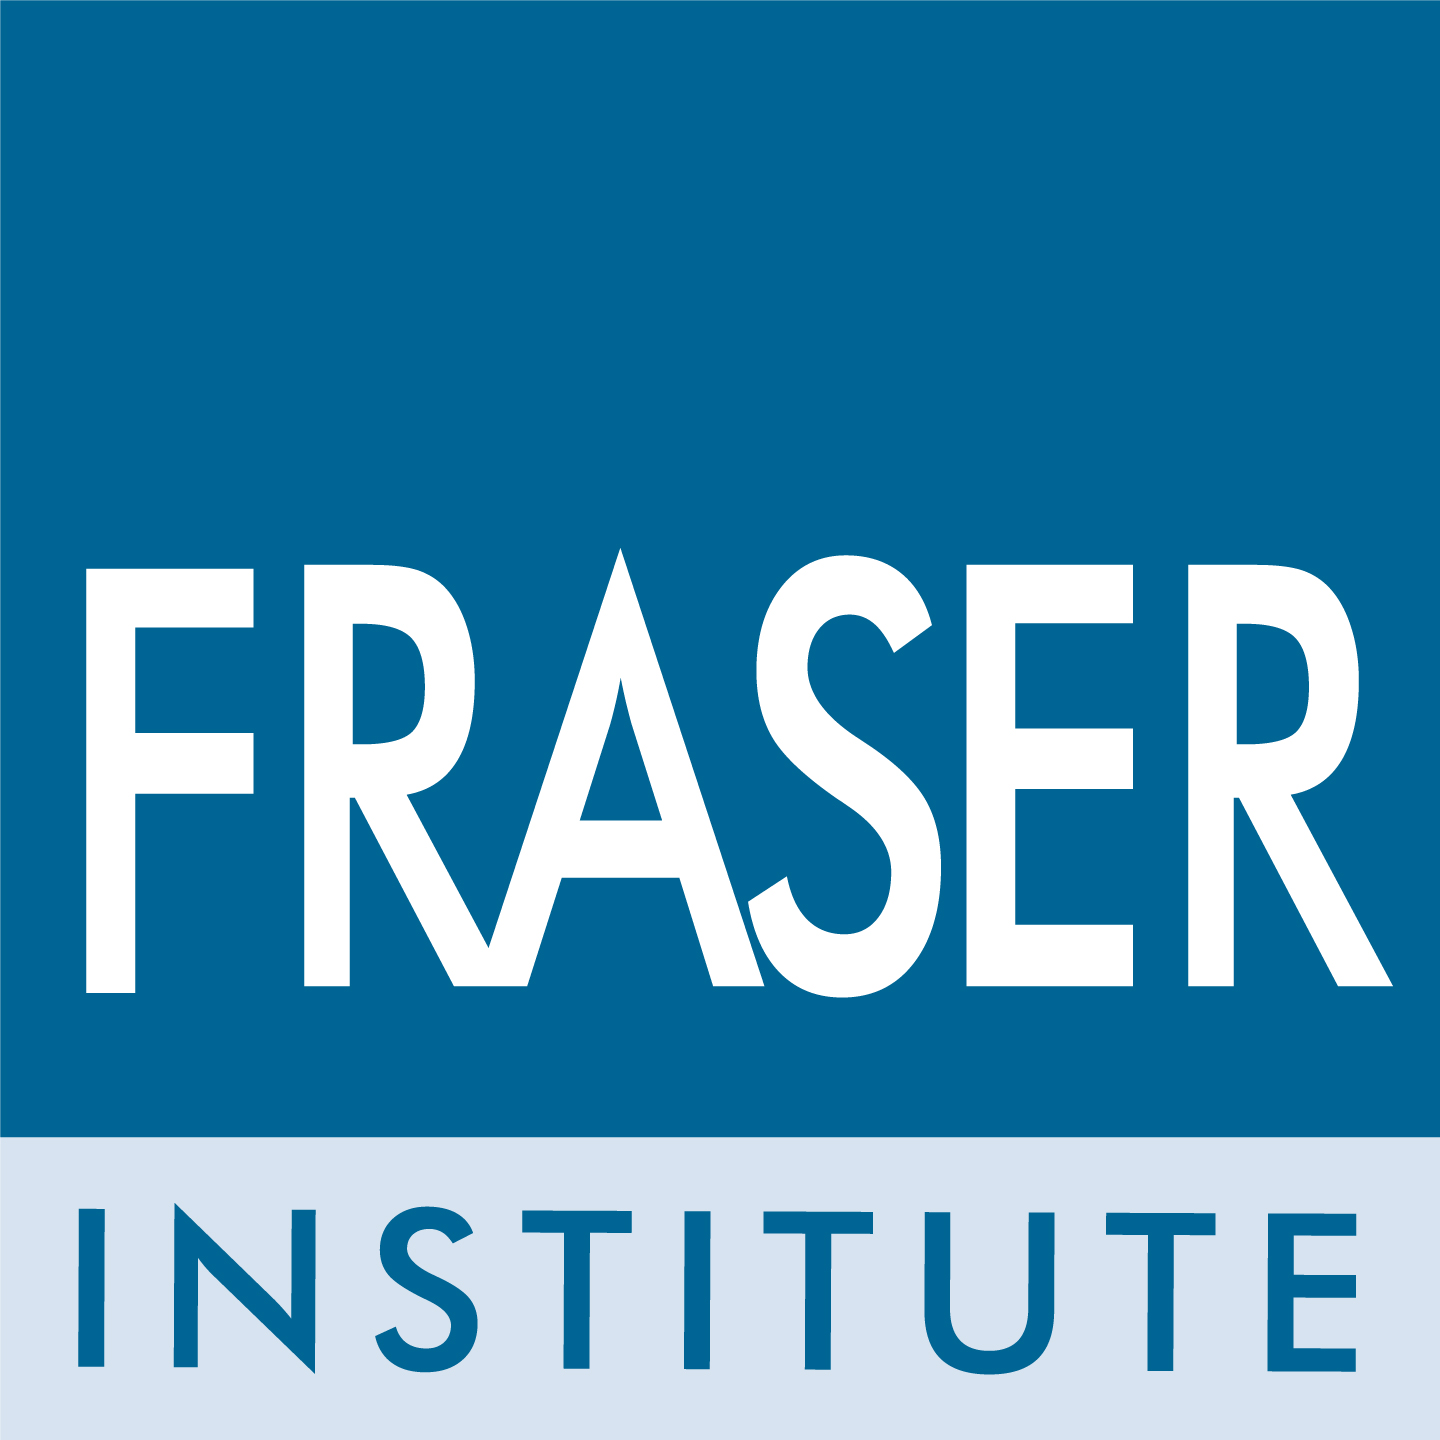 Fraser Institute News Release: This year the Ontario government will spend more on debt interest costs than on post-secondary education